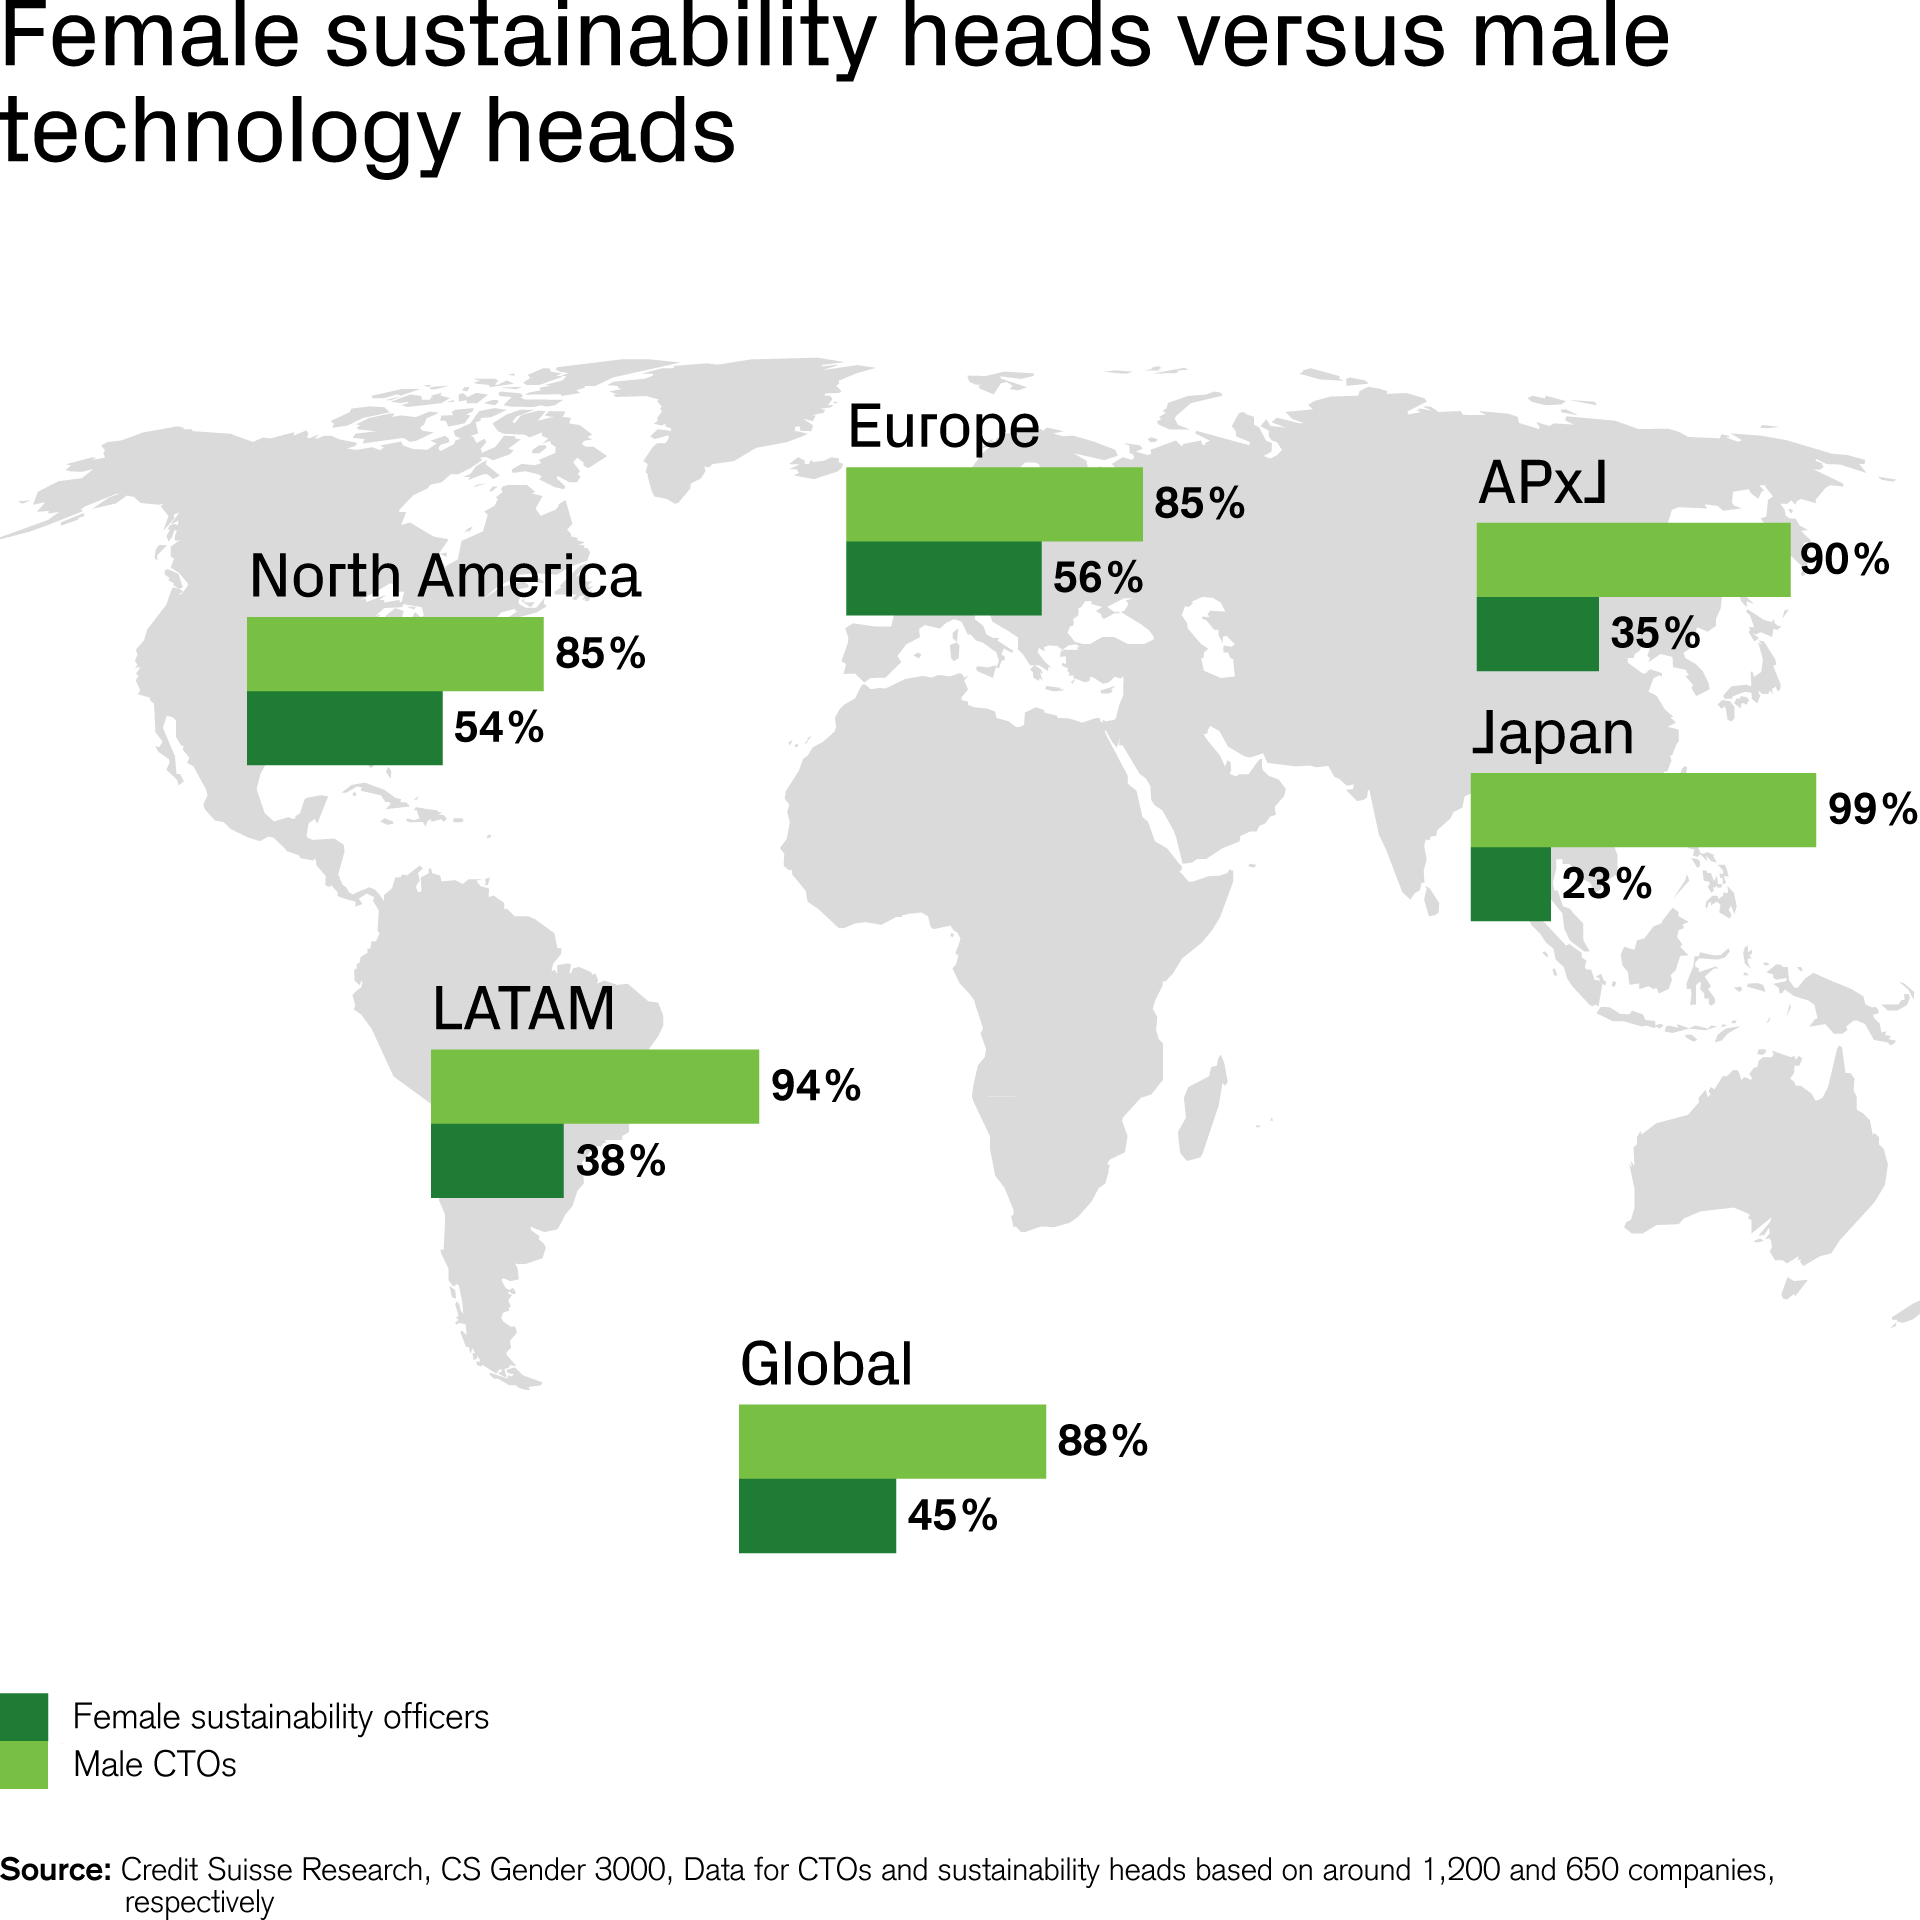 Female sustainability heads versus male technology heads